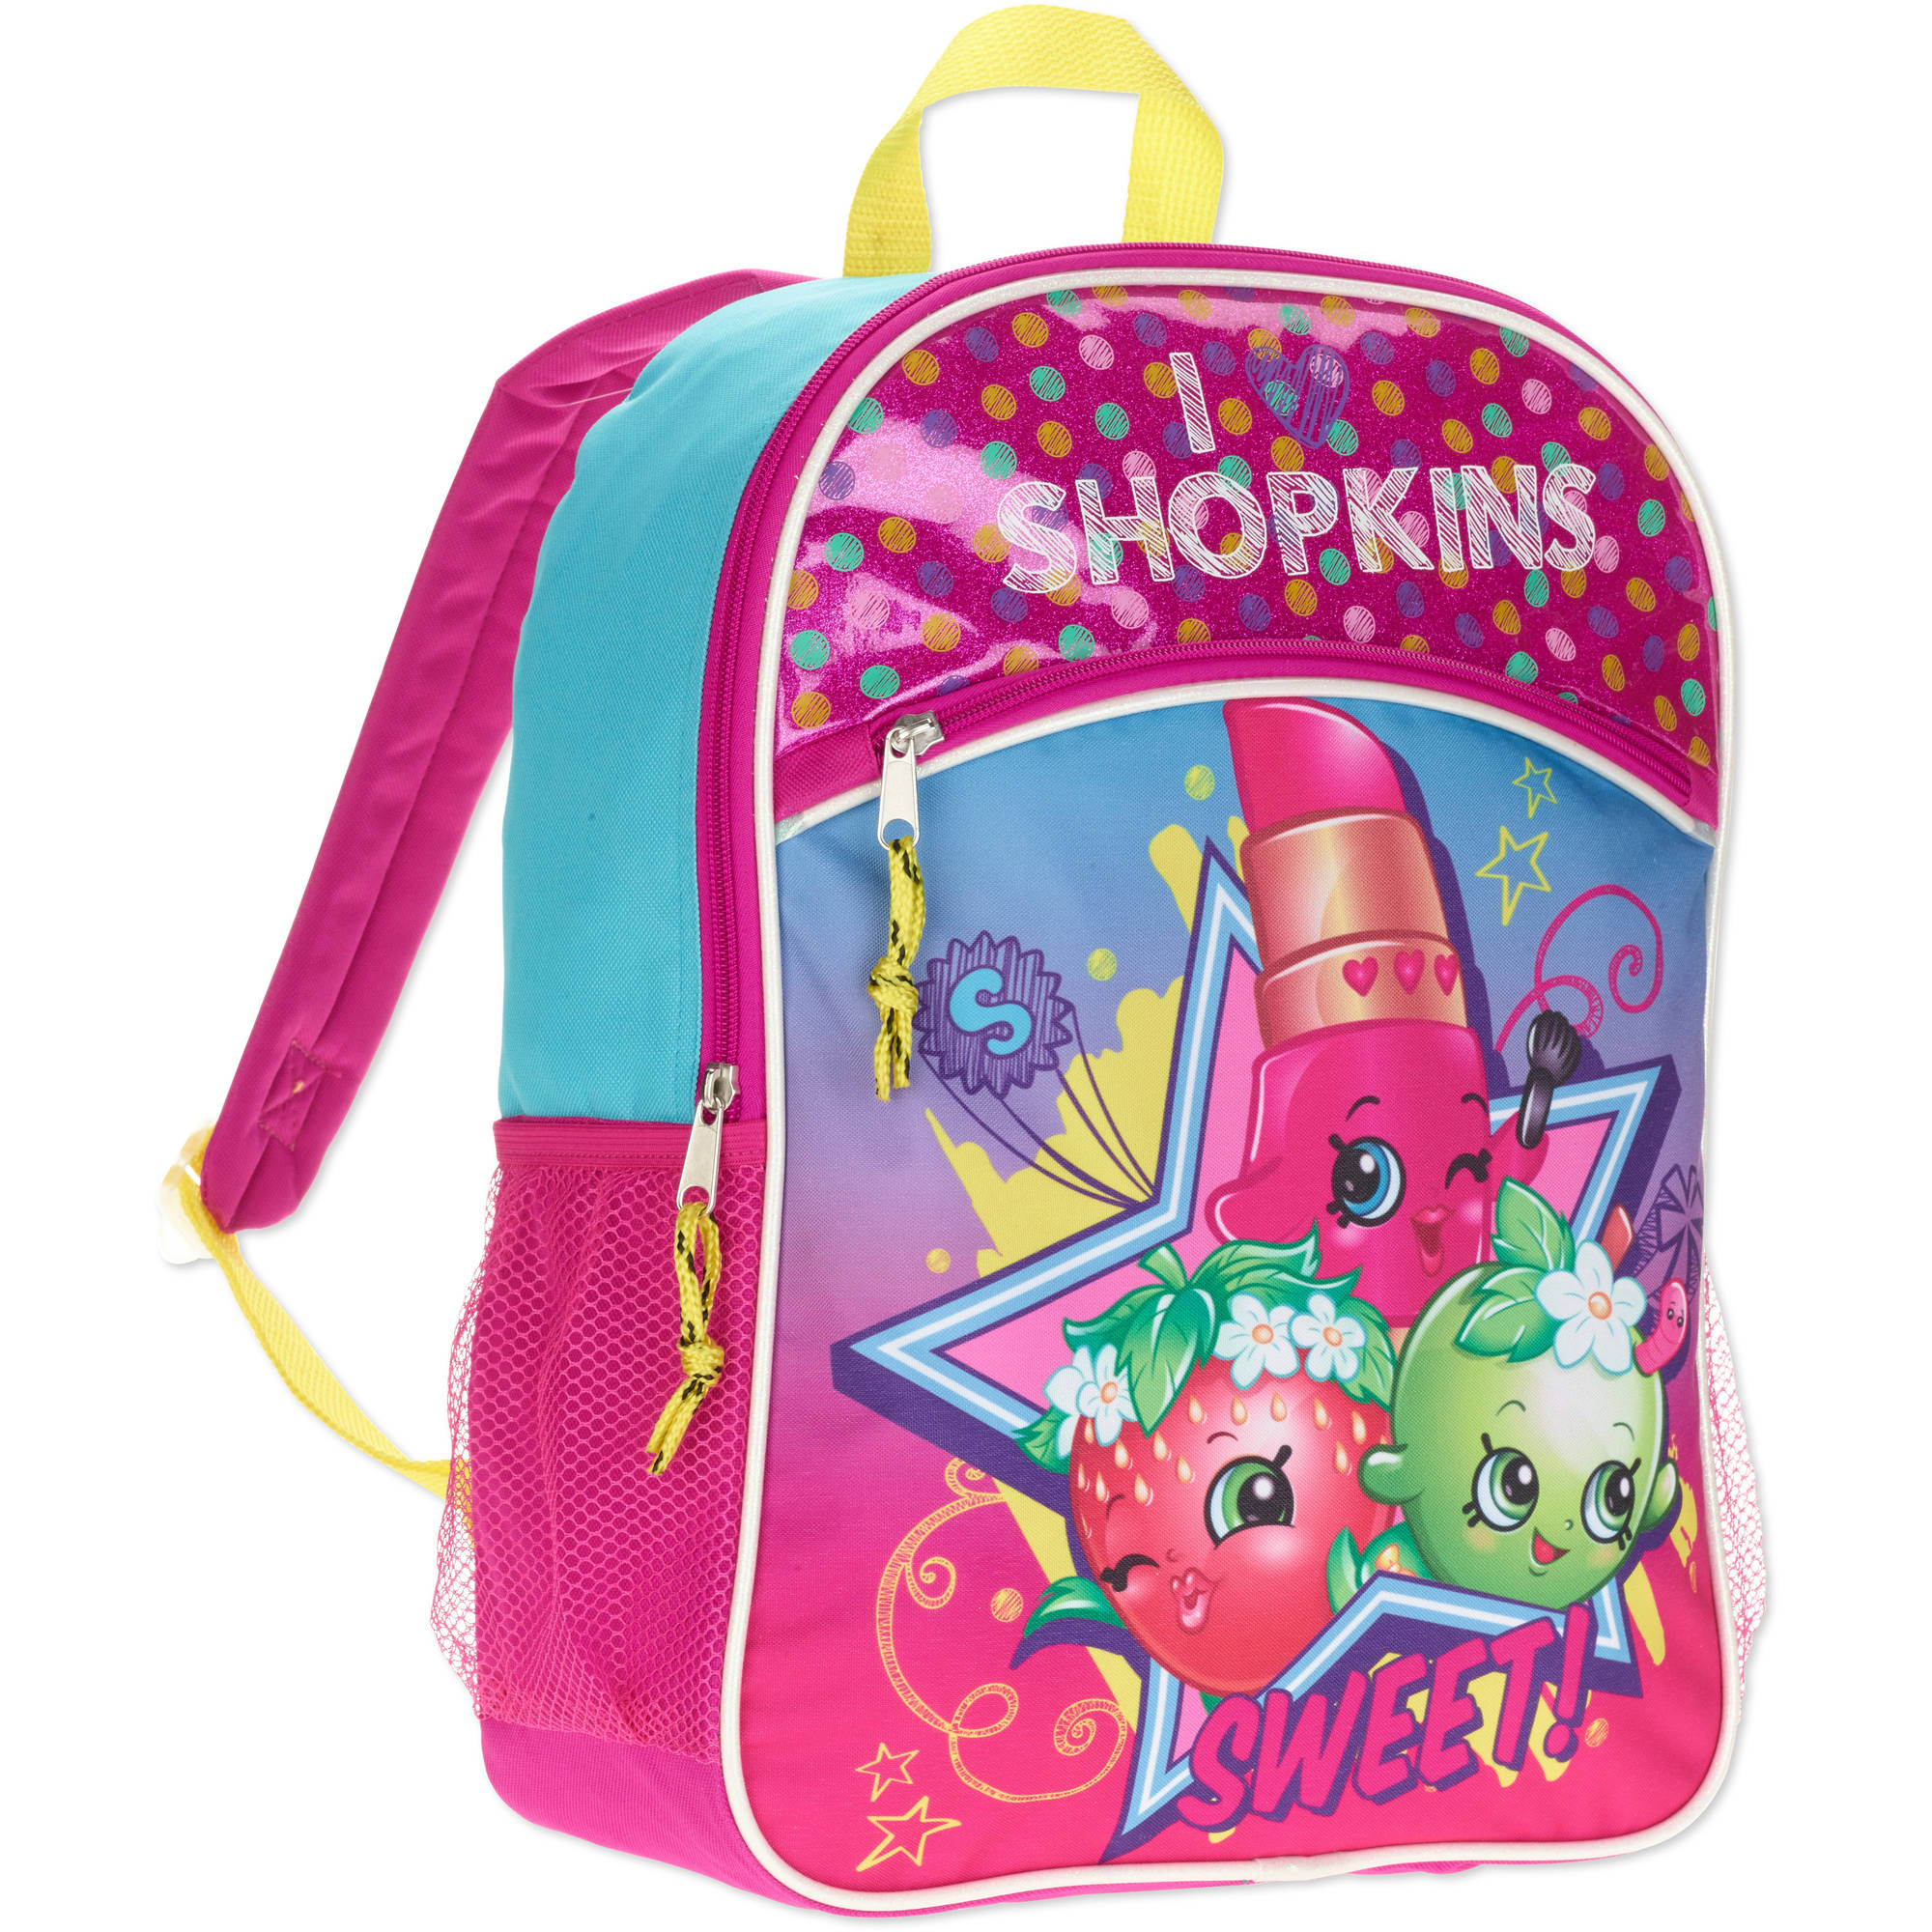 Shopkins Kids backpack